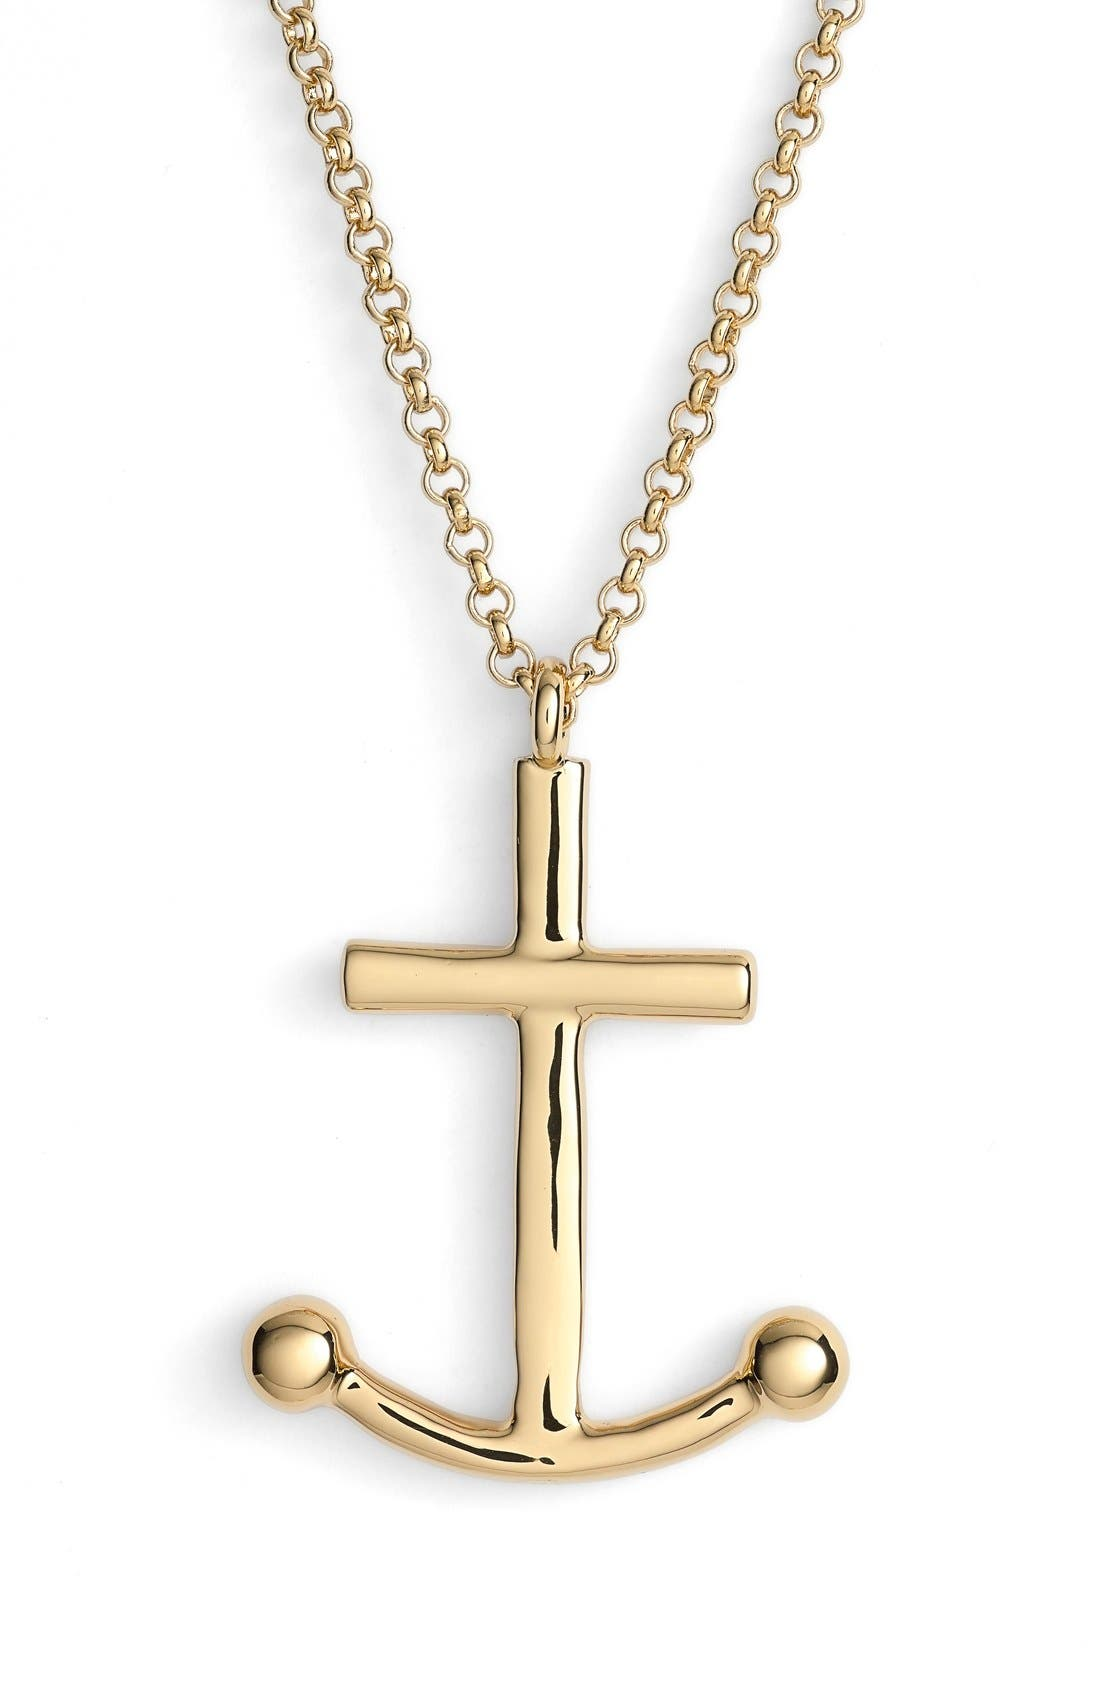 KATE SPADE NEW YORK,                             'anchors away' pendant necklace,                             Alternate thumbnail 2, color,                             710